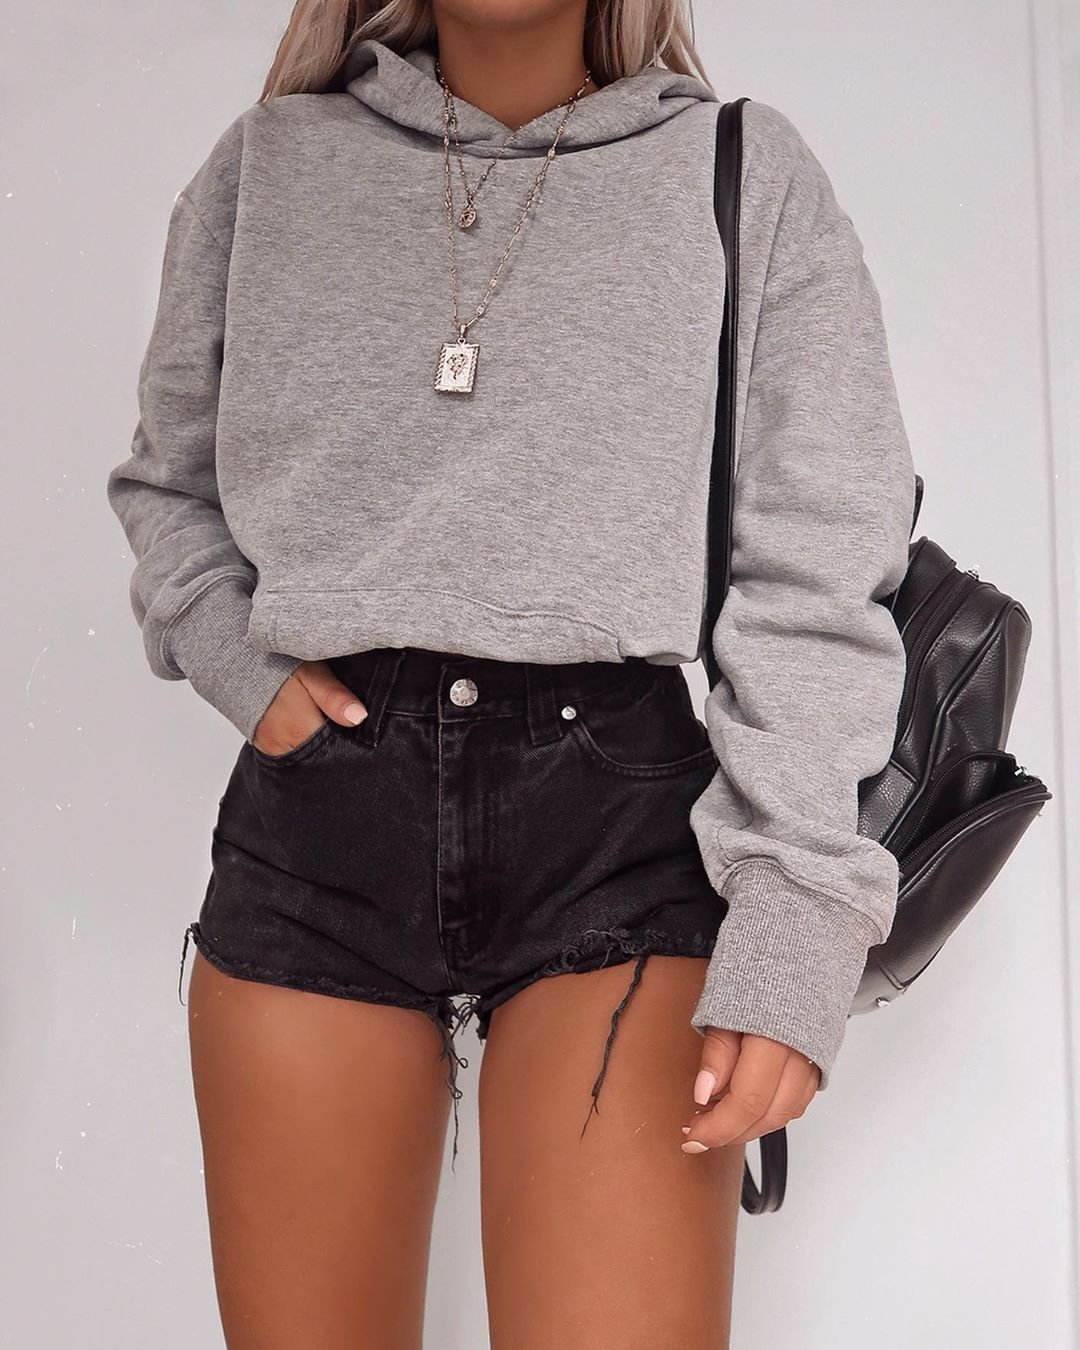 30+ beautiful summer outfits #collegeoutfits Find the most beautiful outfits for your ... -  30+ beautiful summer outfits #collegeoutfits Find the most beautiful outfits for your summer look.  - #beautiful #collegeoutfits #eggrecipes #fasionoutfits #fasionsummer #fasionteenage #Find #grillingrecipes #minimalistfasion #modestfasion #outfits #springfasion #summer